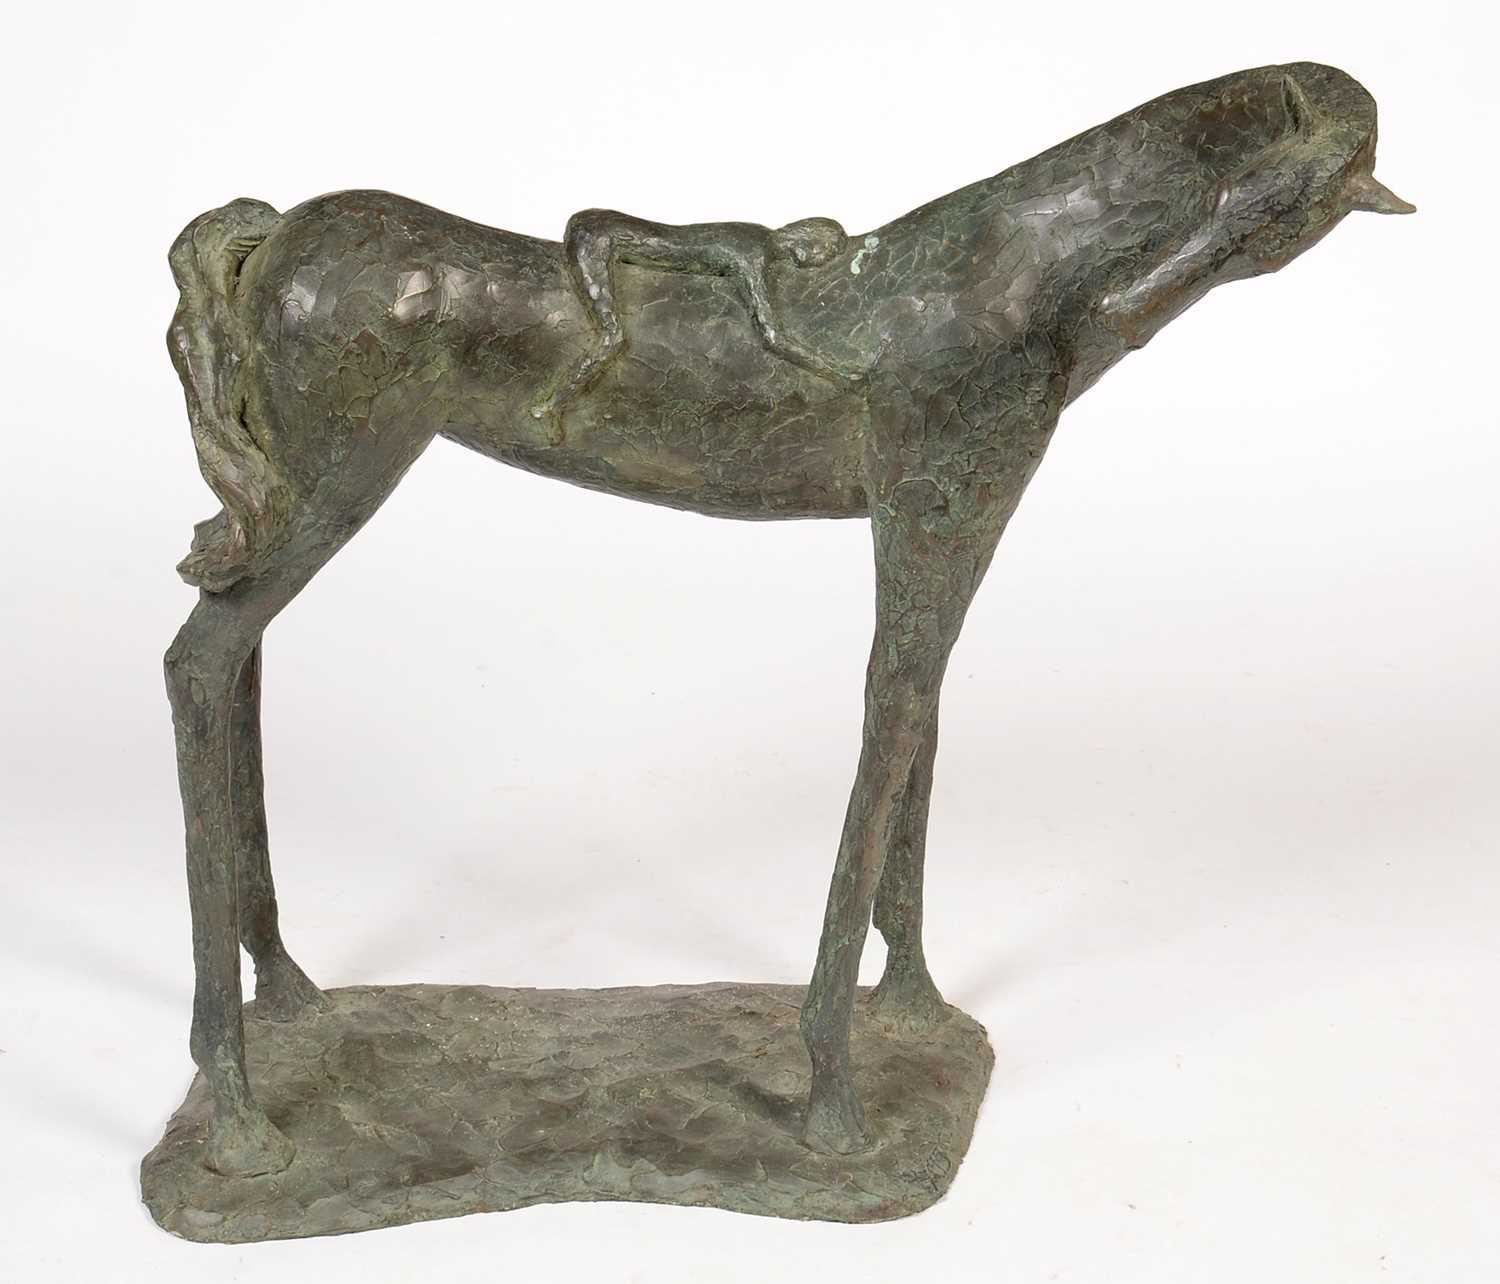 Lot 780 - A contemporary resin model of a small figure resting on a horse